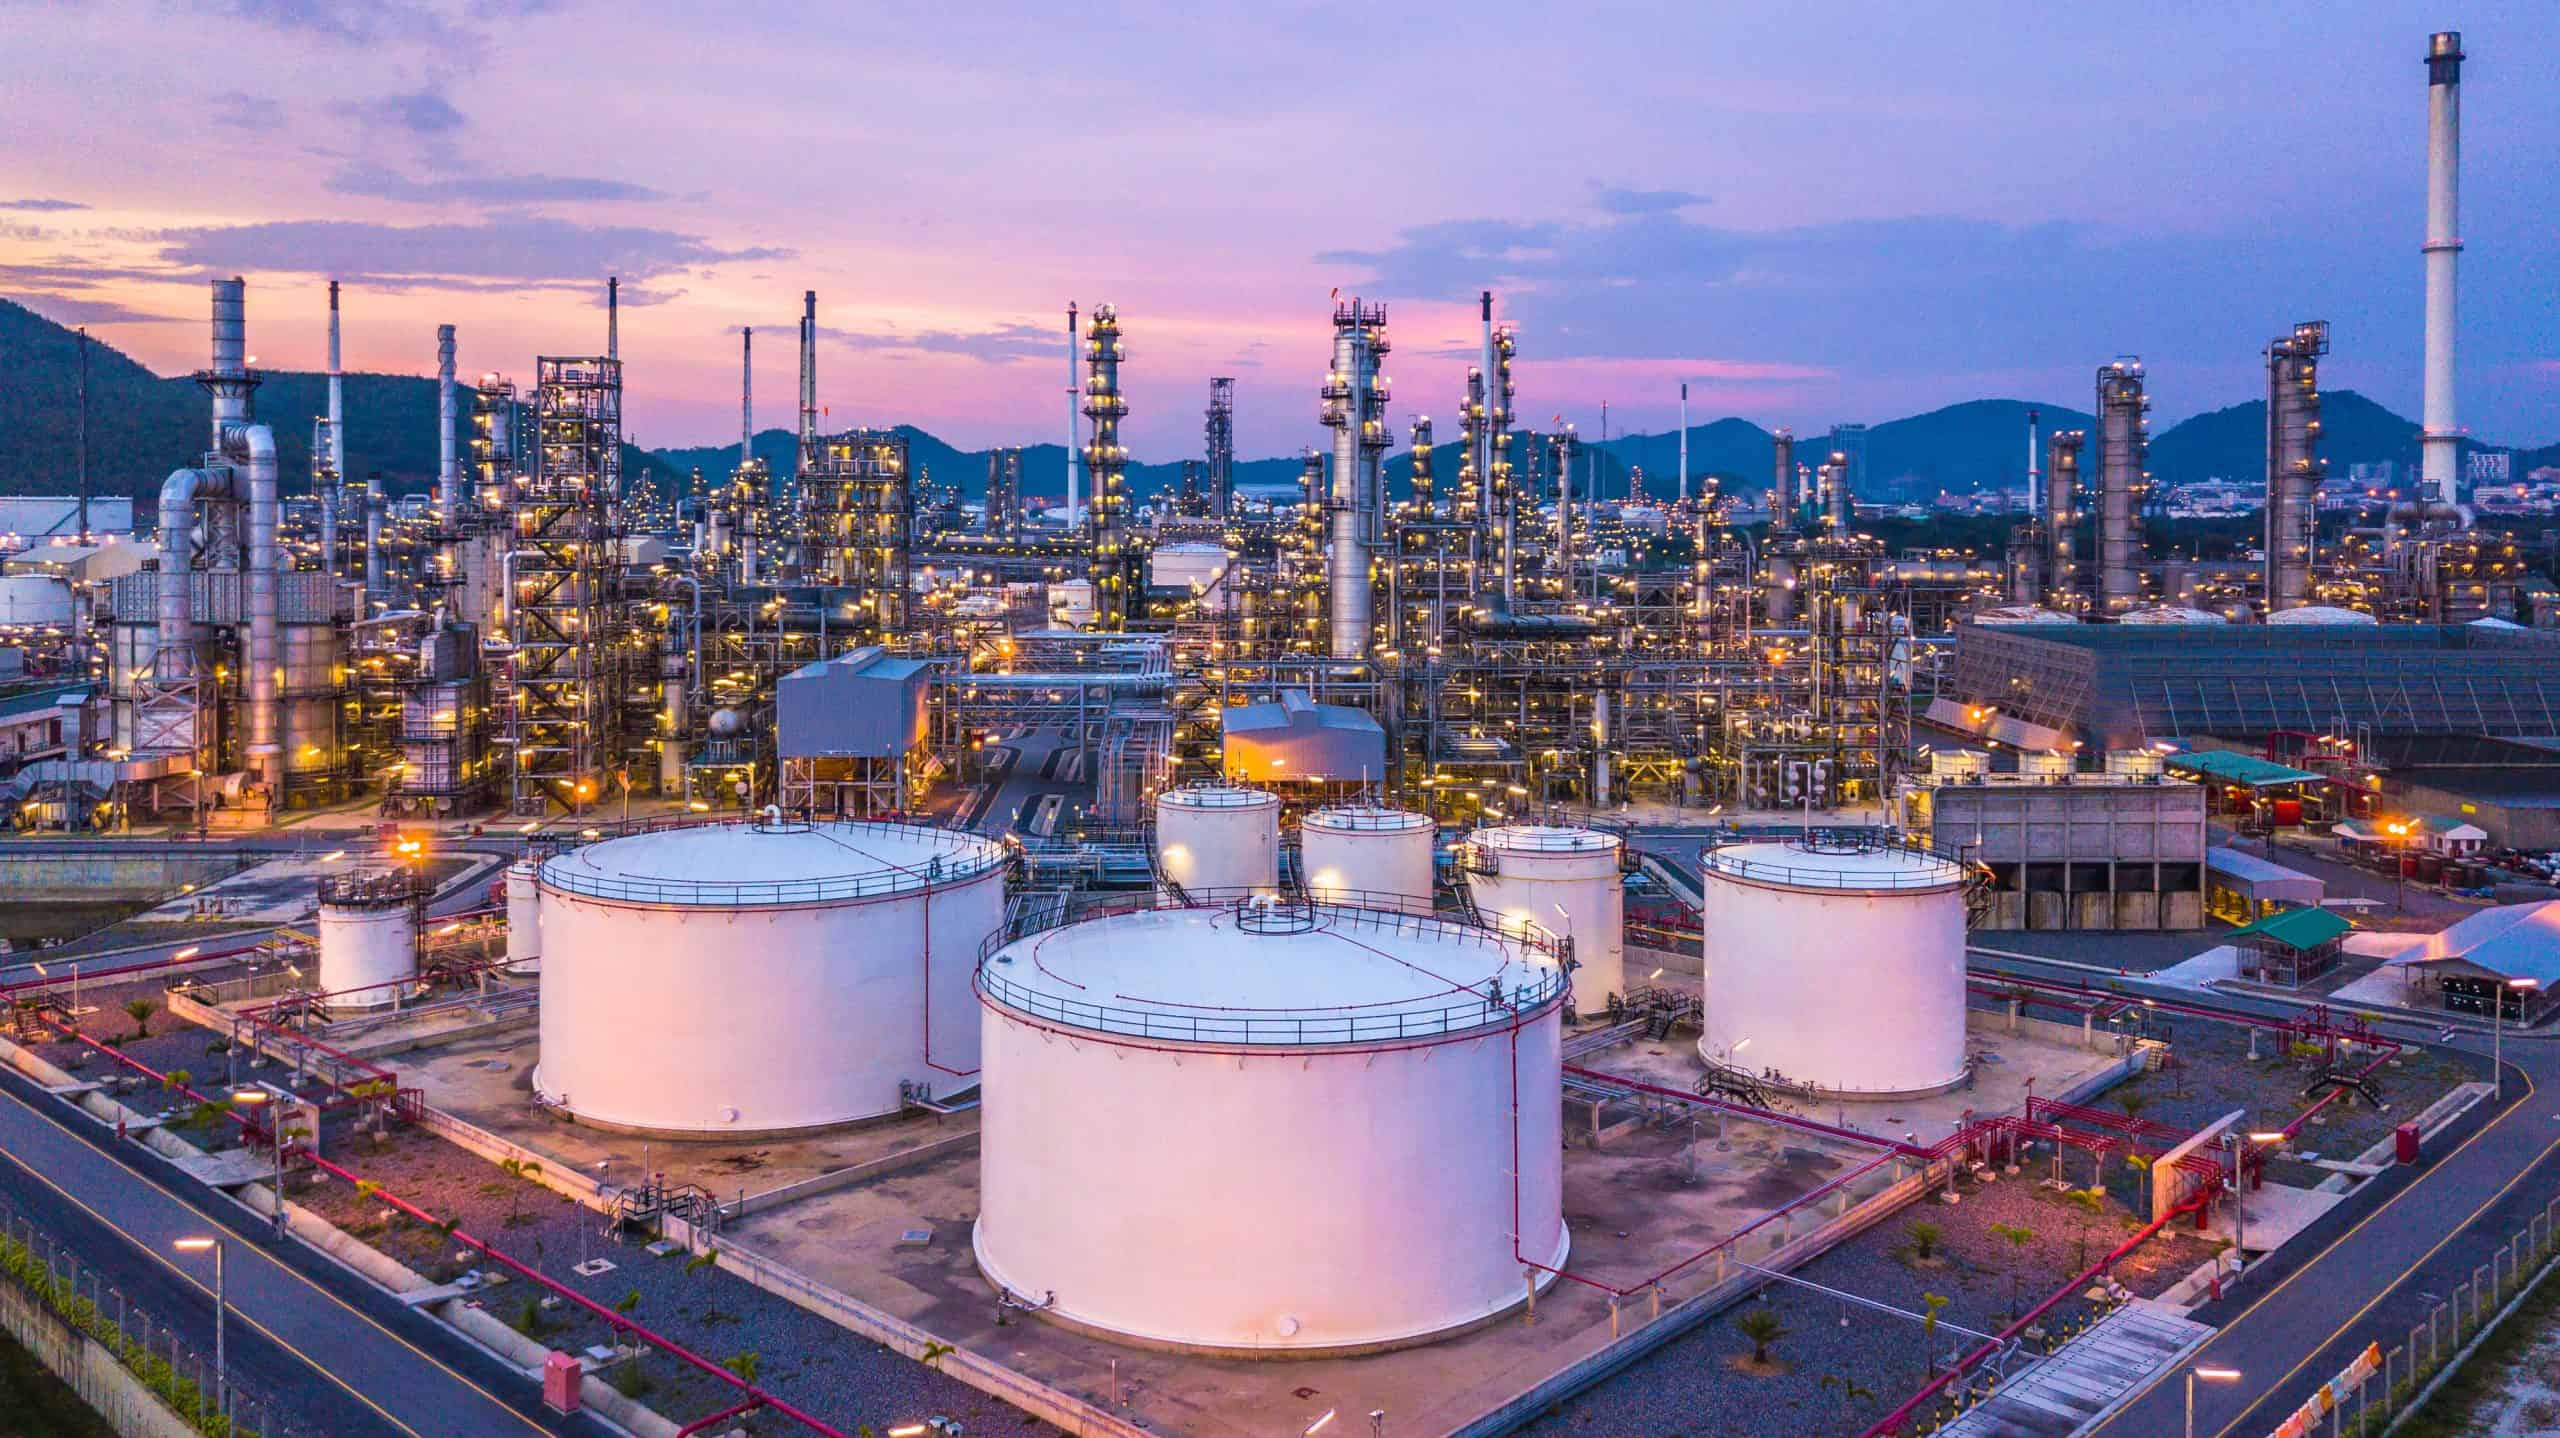 Aerial view of oil refinery plant from industry zone